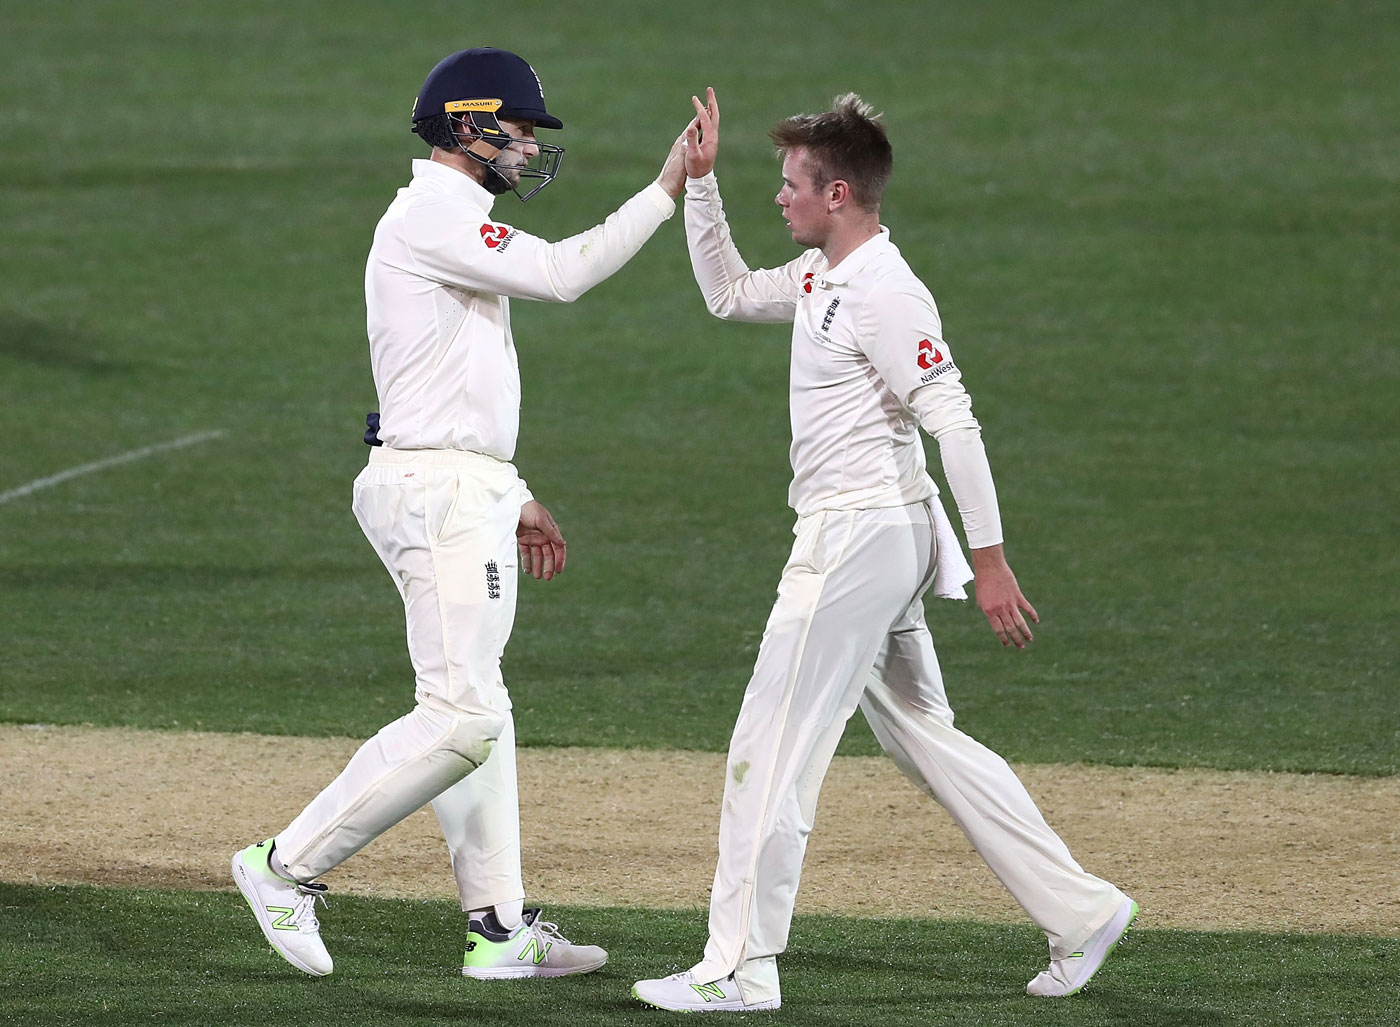 Ashes 2017/ 18: I Wouldn't Play Jake Ball In The Next Test, Says Kevin Pietersen As He Bats For Uncapped Mason Crane's Inclusion 2